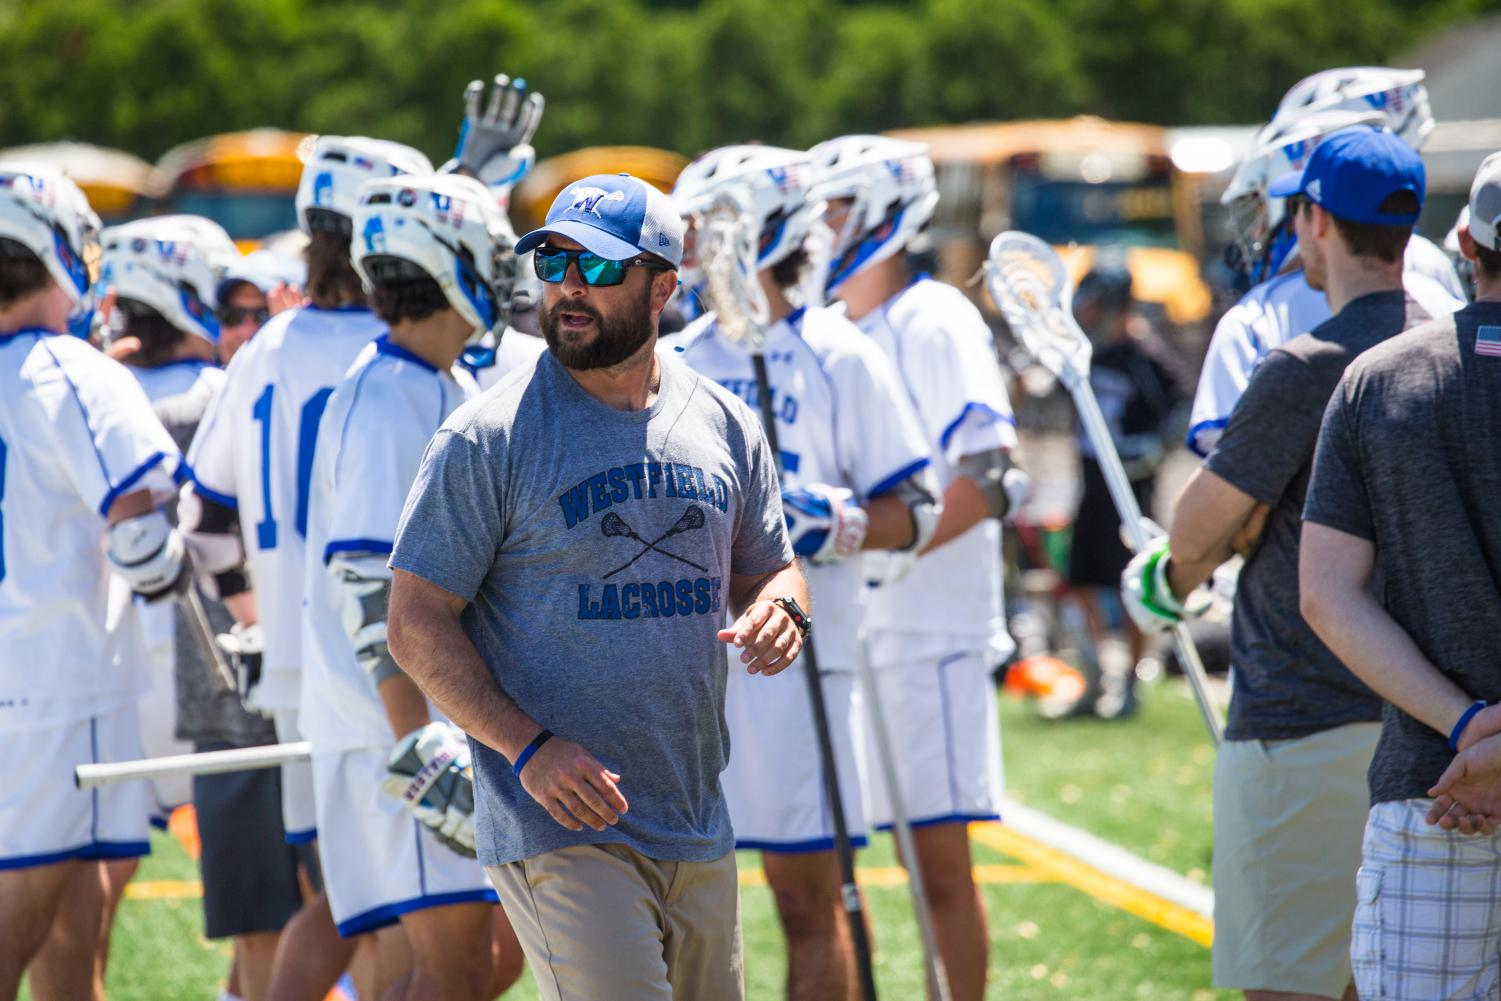 Coach Wertheimer in action on the lacrosse field